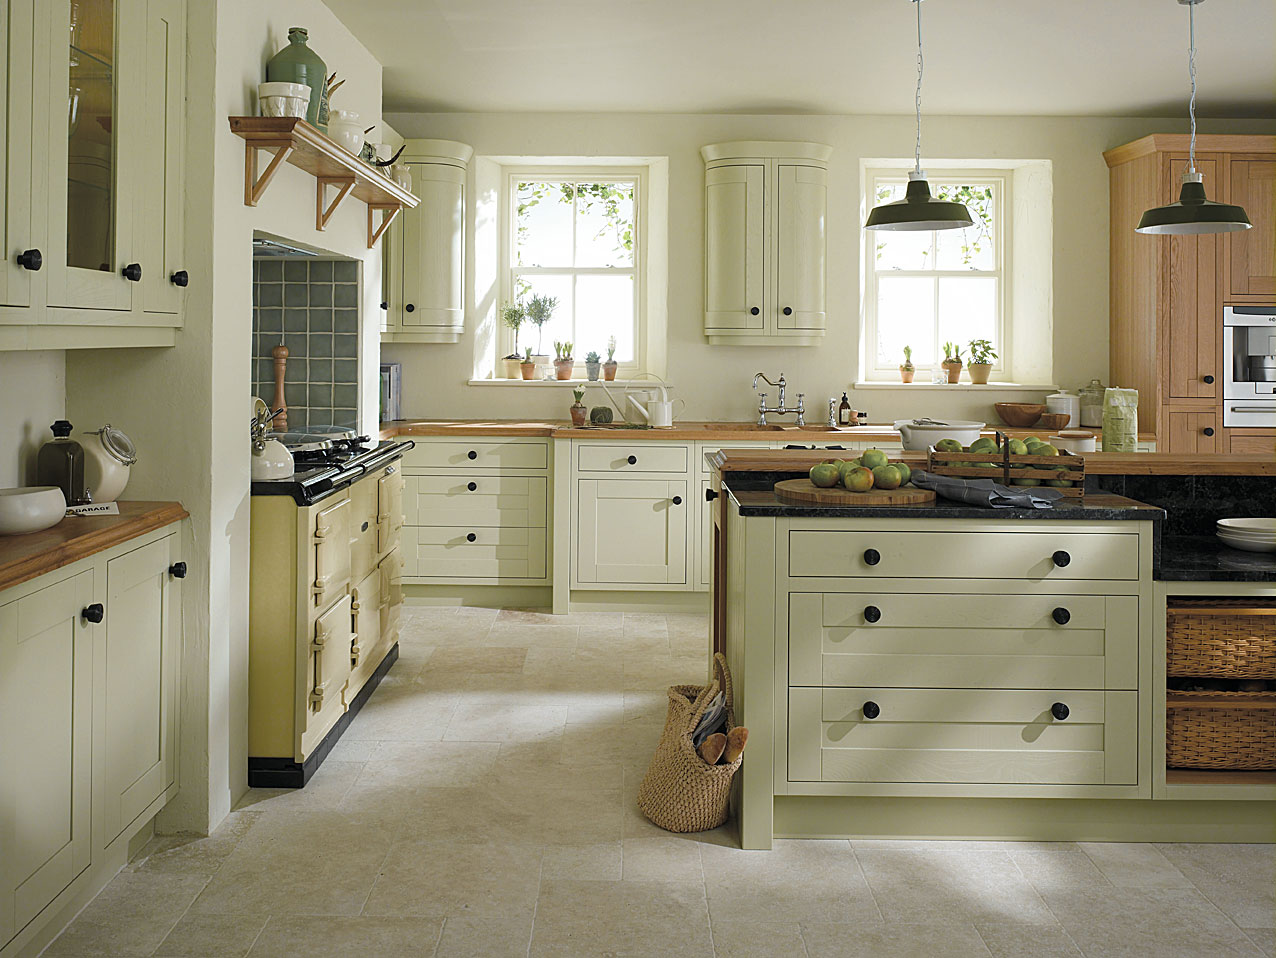 Kitchen storage ideas design cabinets islands kitchens traditional white antique best classic Best kitchen ideas for small kitchens